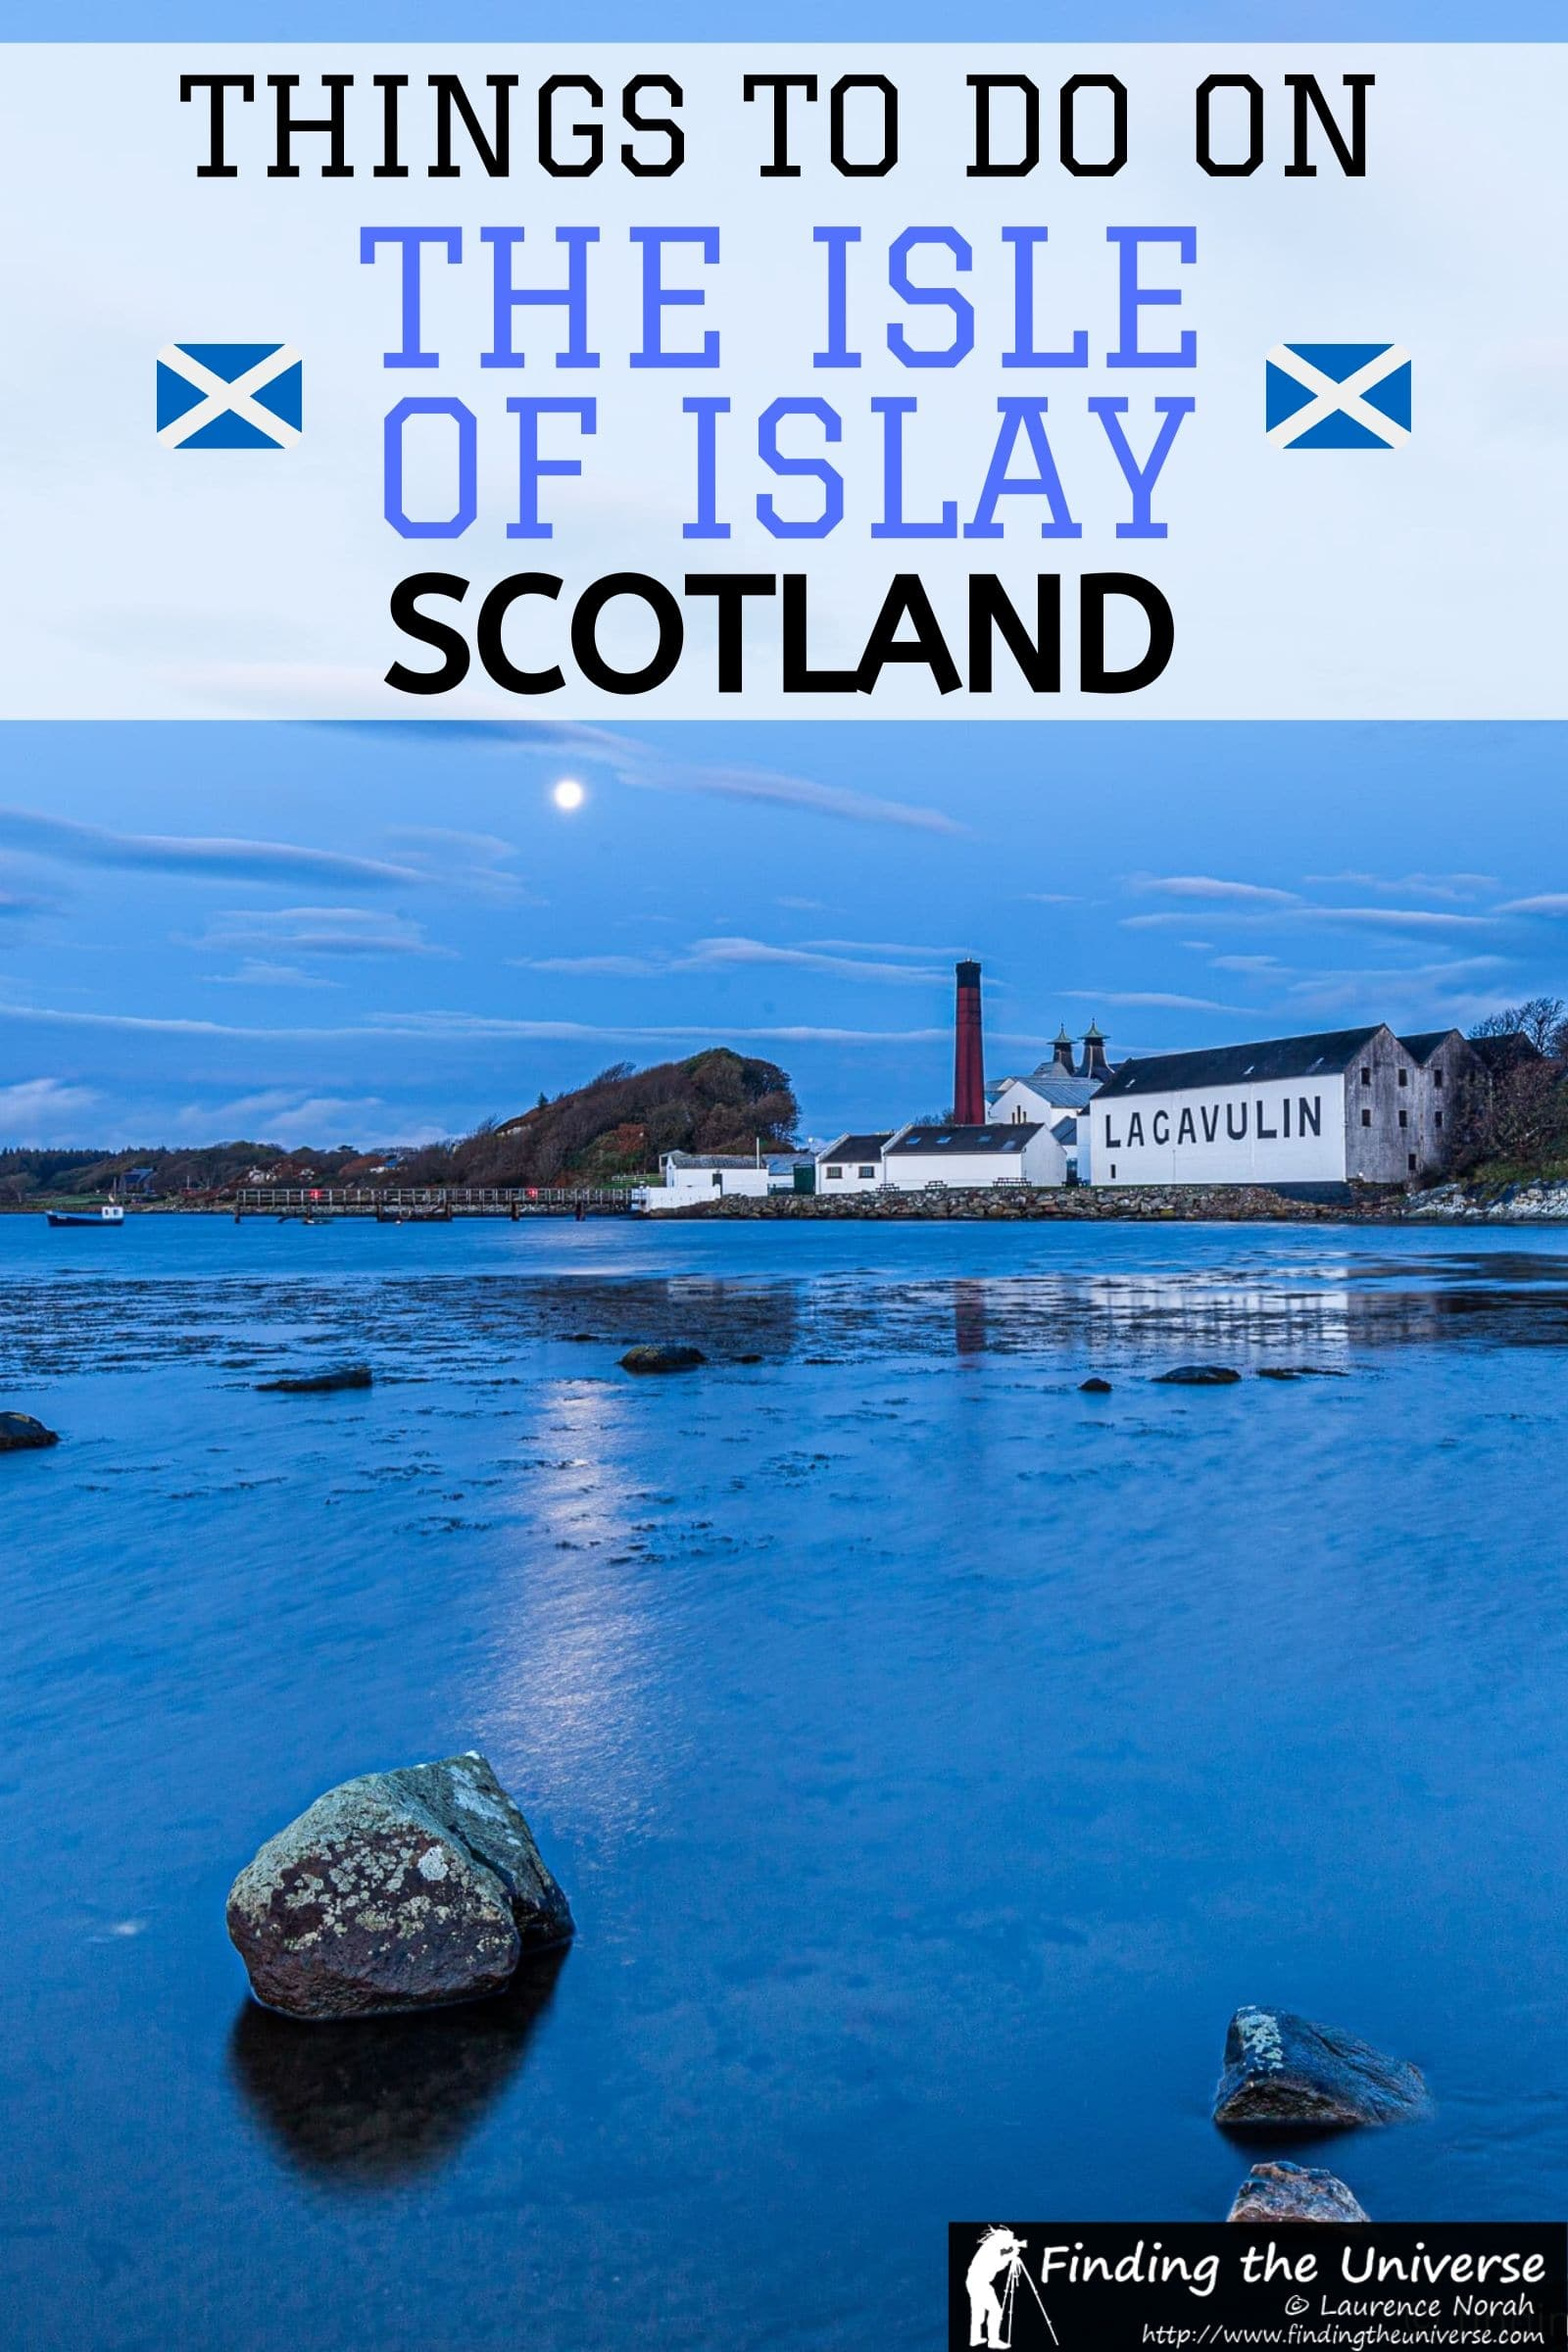 A detailed guide to Things to do on Islay, Scotland. Includes what to see, where to stay, when to visit, getting around and how to get here and away!